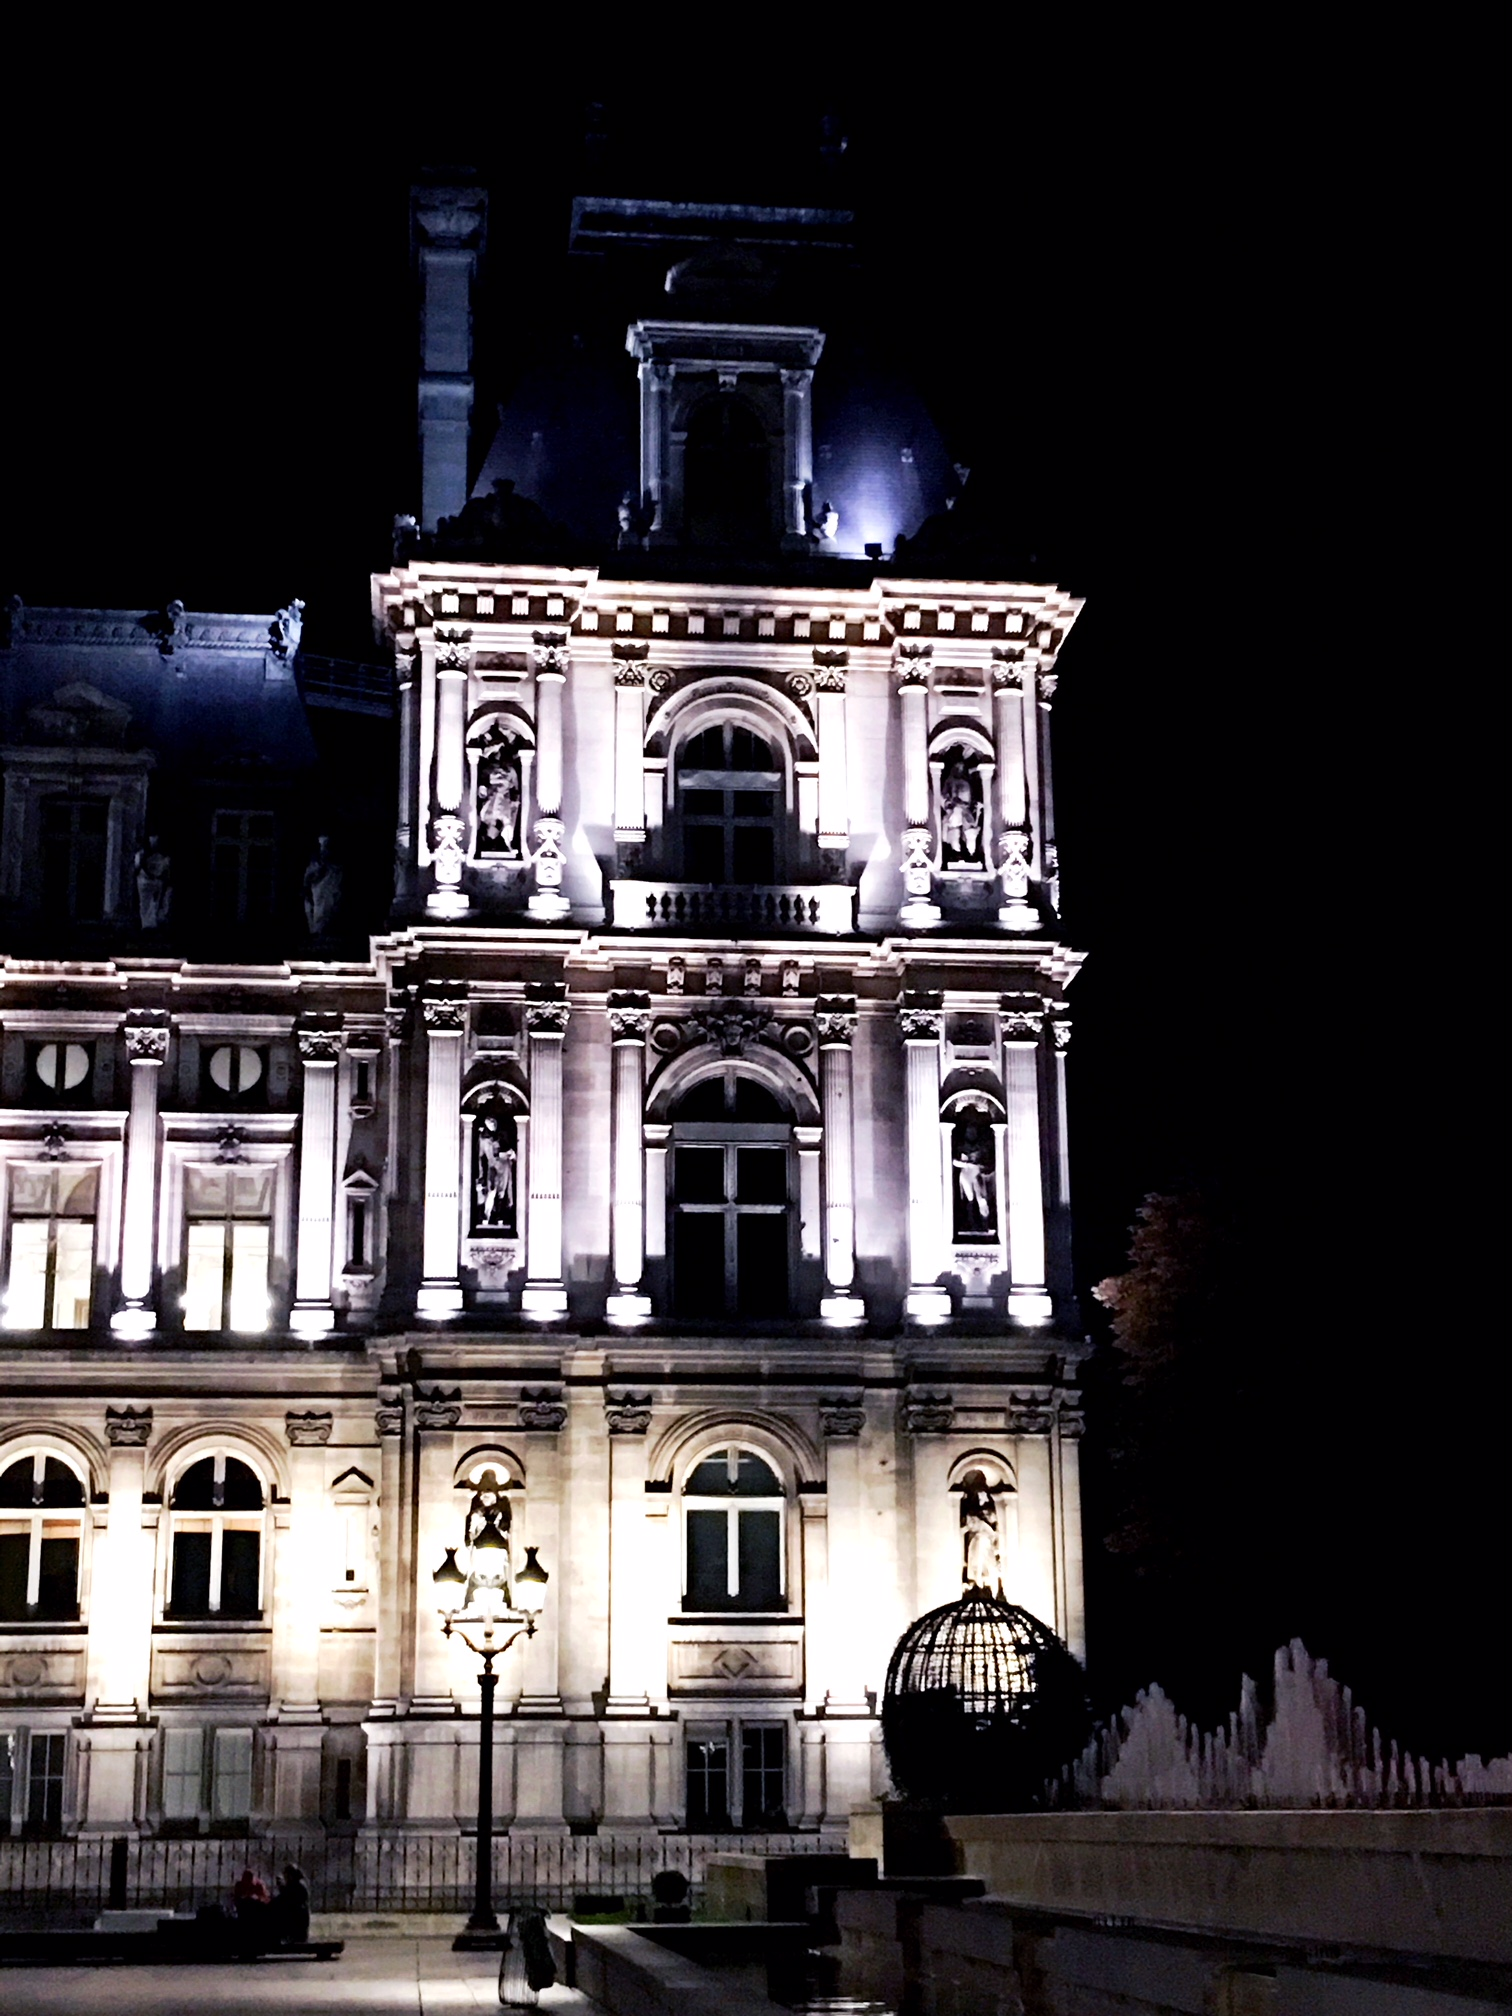 Paris Hotel de Ville at night